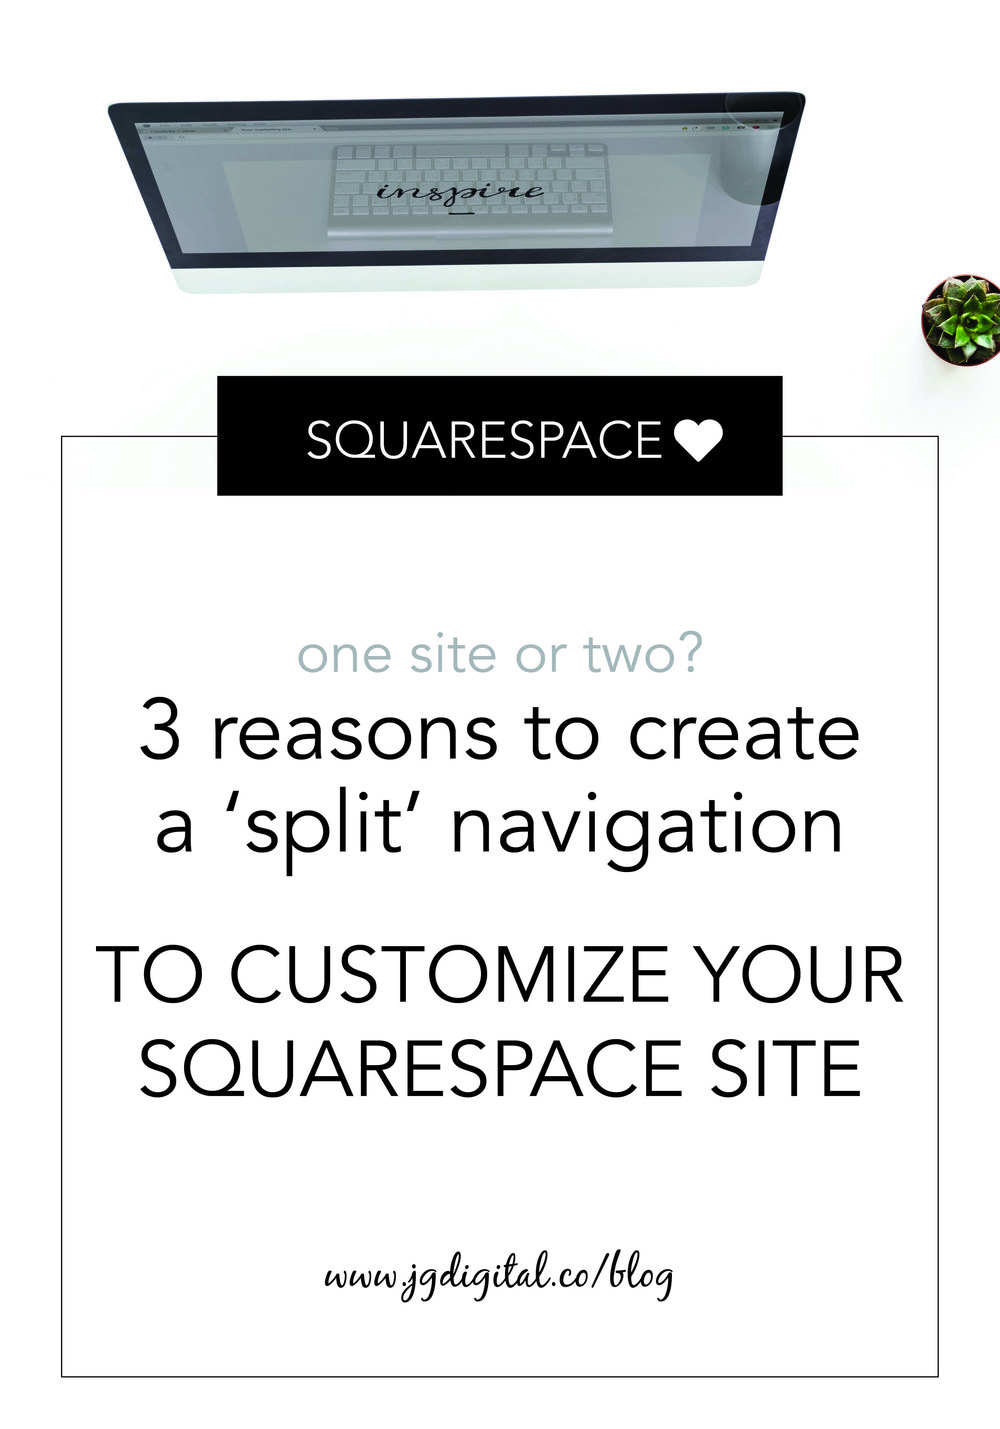 One Site or Two? 3 Reasons to Create a 'Split' Navigation to Customize Your Squarespace Site by jgdigital.co